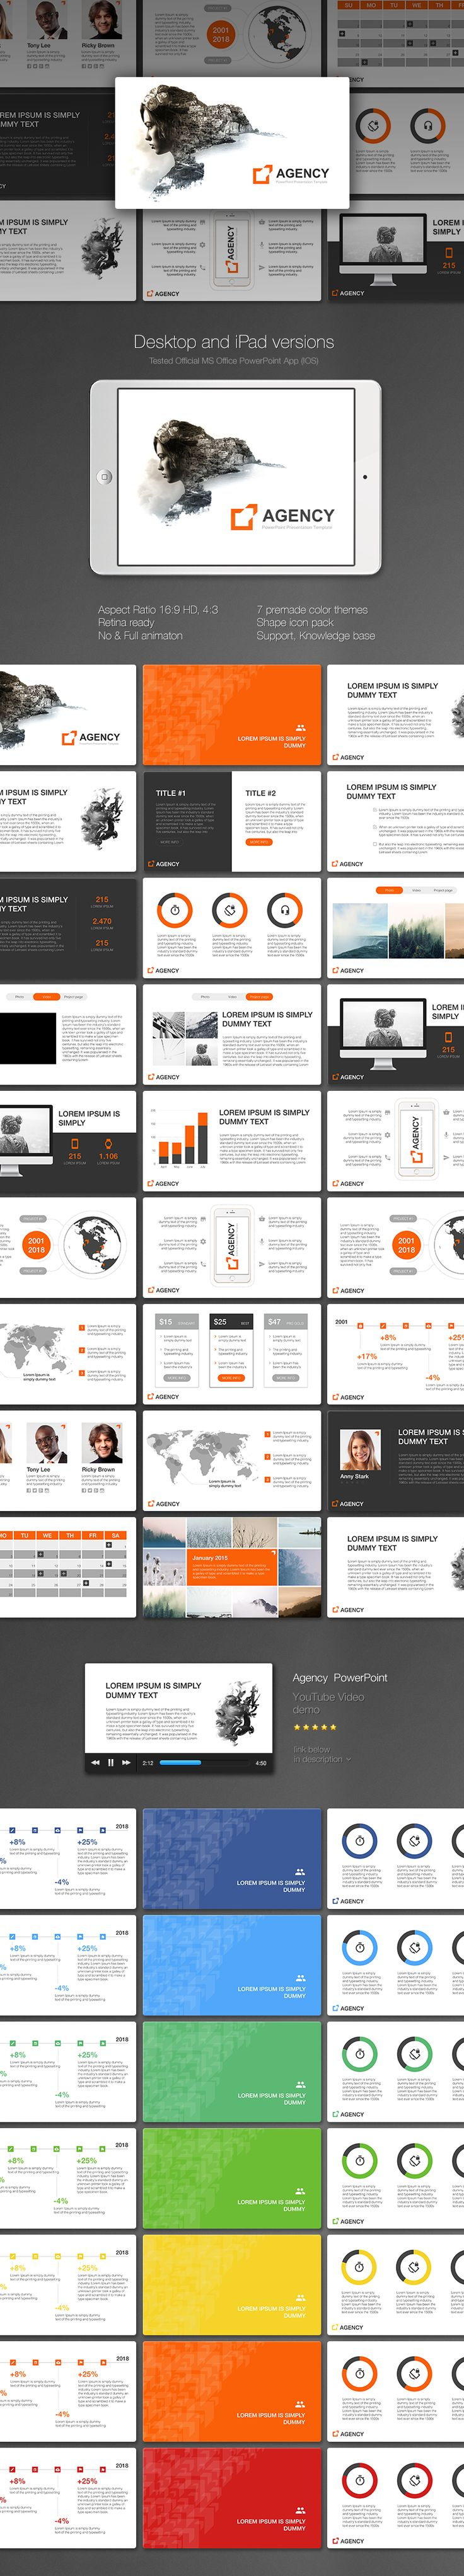 "Download: http://site2max.pro/agency-powerpoint-template/ ""Agency"" PowerPoint template #agency #powerpoint #pptx #marketing #plan #business"